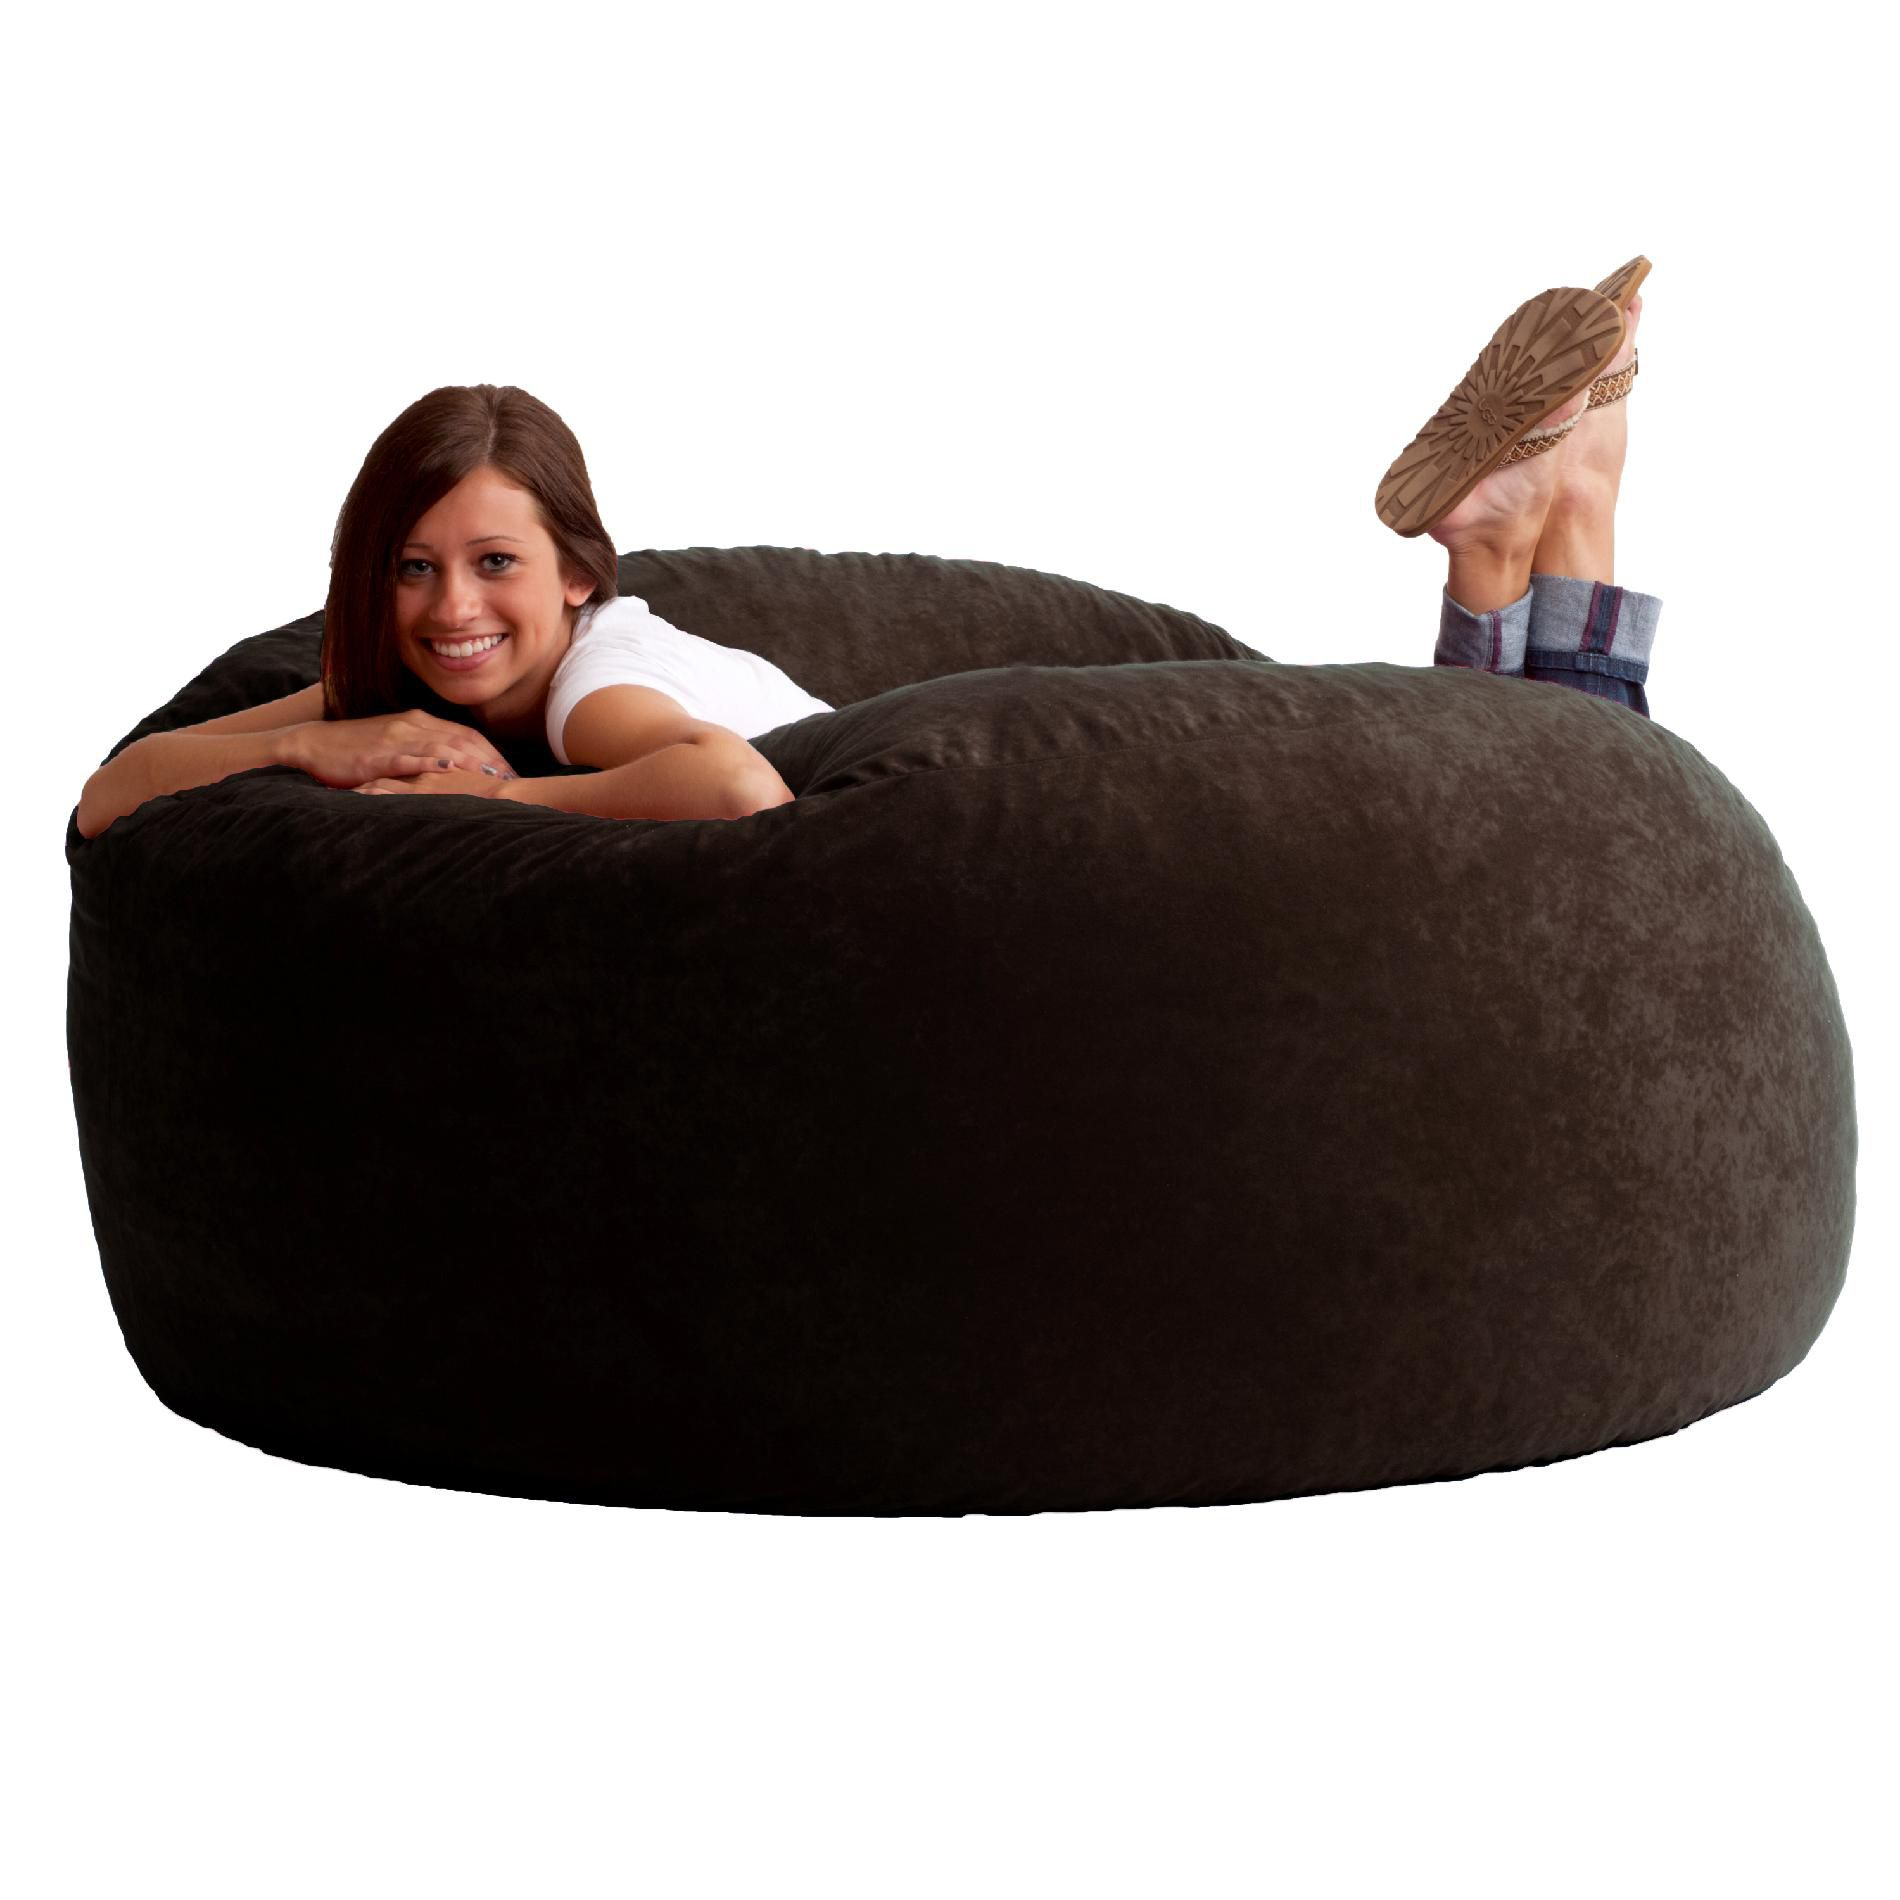 Fuf Chair Comfort Research 5 39 King Fuf Bean Bag Chair In Black Onyx